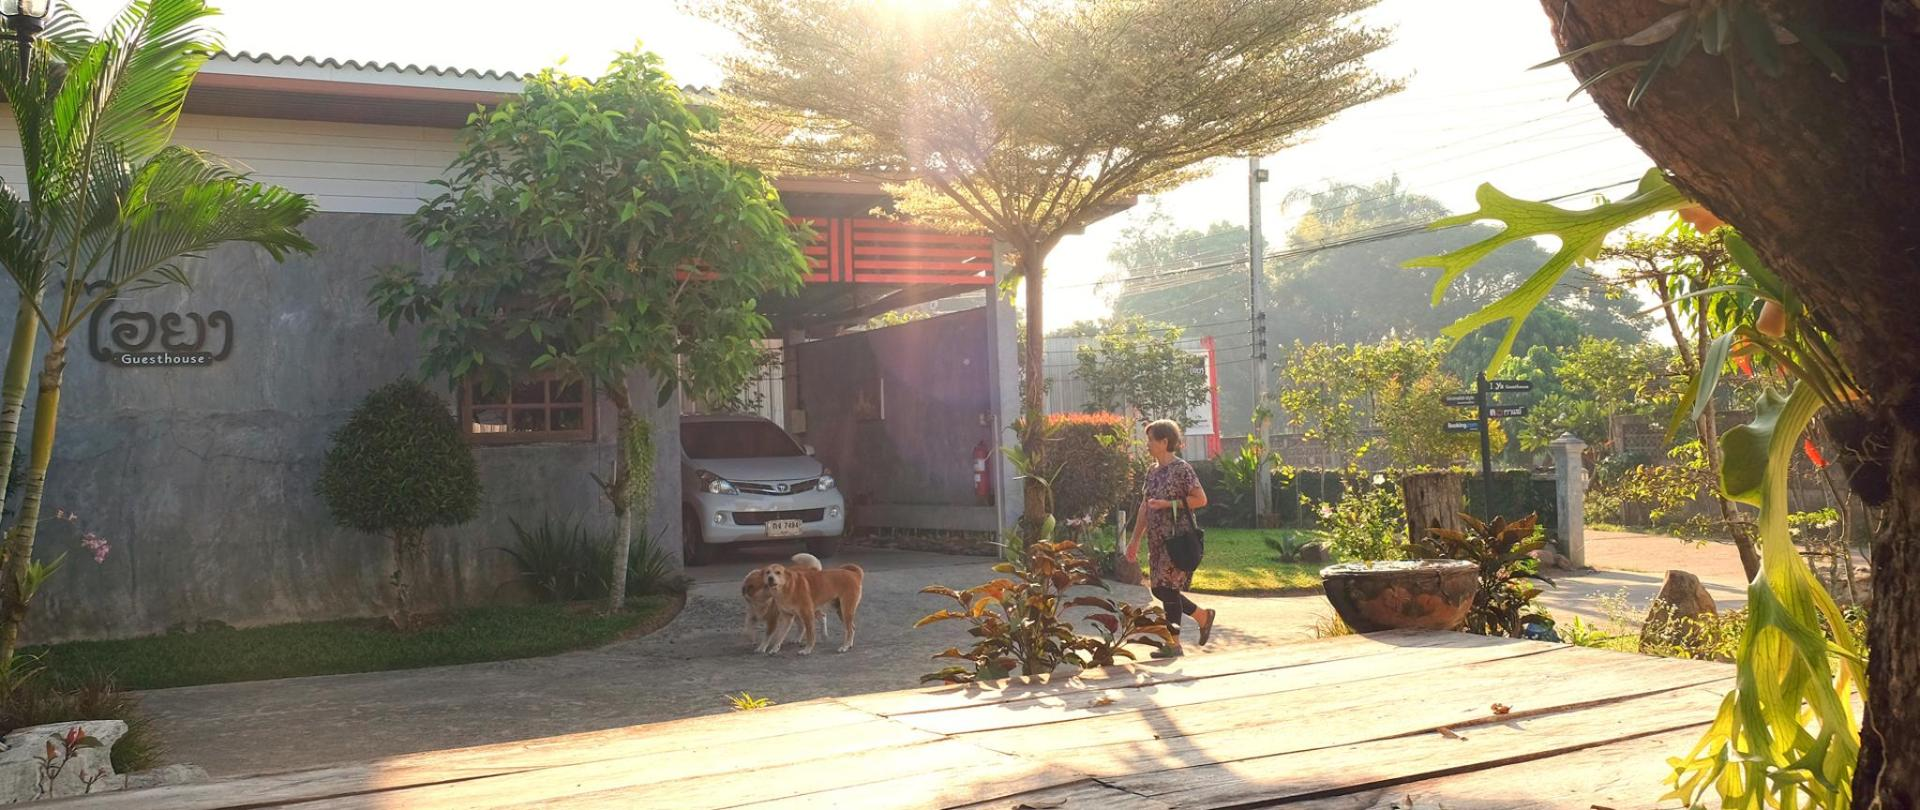 Owner-Pets-Garden-logo-facade-entrance-secured parking-I-Ya-Guesthouse-Phayao.jpg